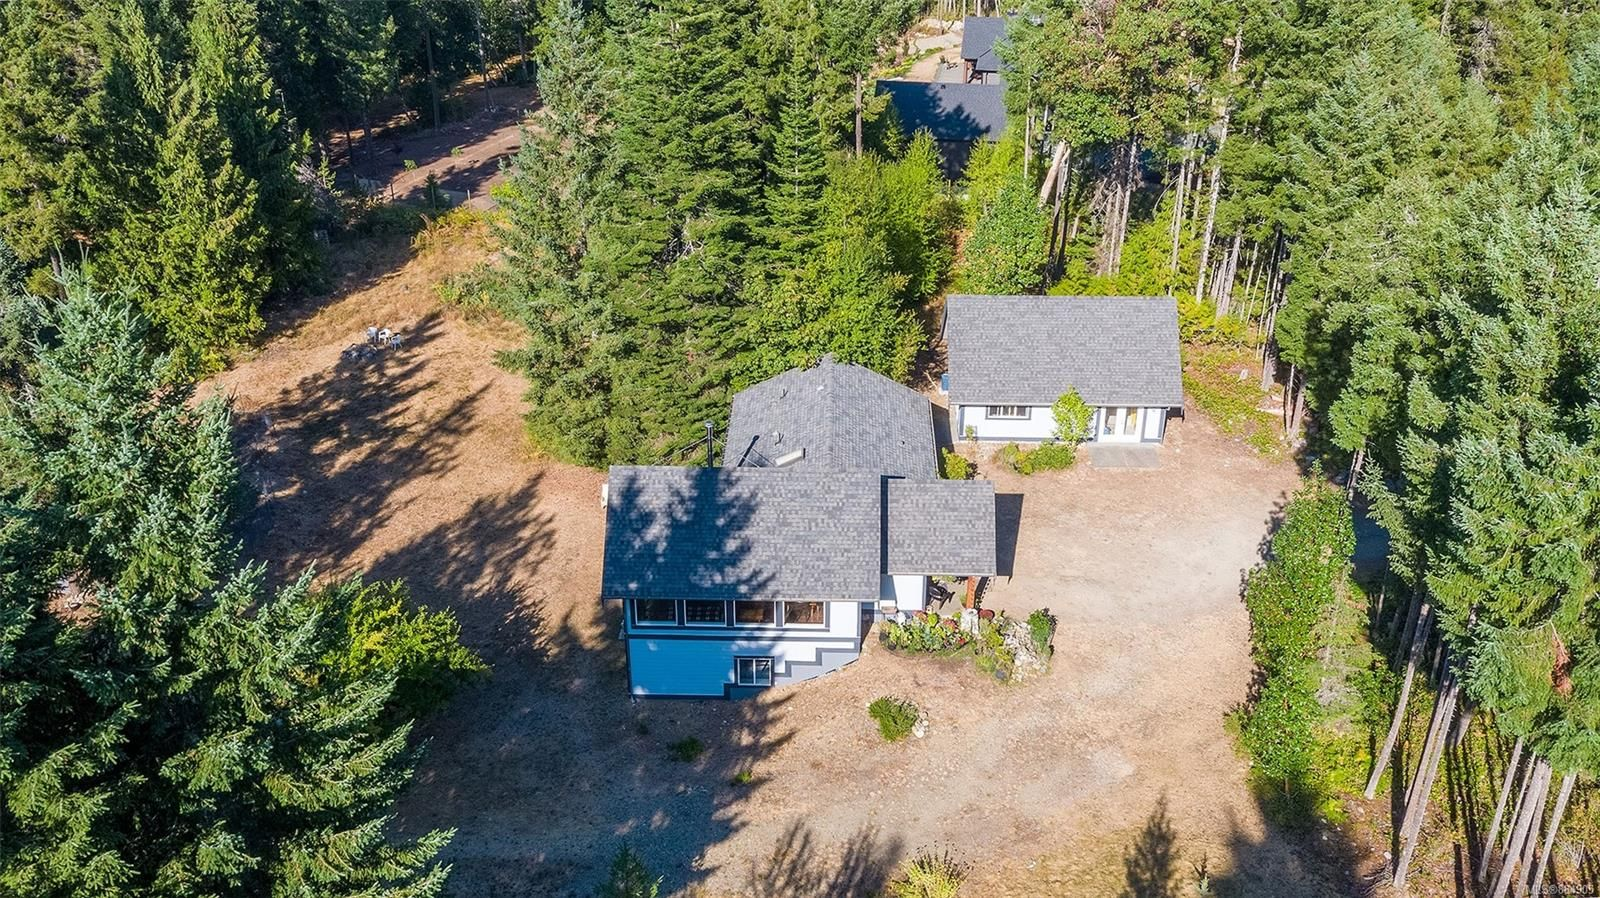 Main Photo: 849 RIVERS EDGE Dr in : PQ Nanoose House for sale (Parksville/Qualicum)  : MLS®# 884905